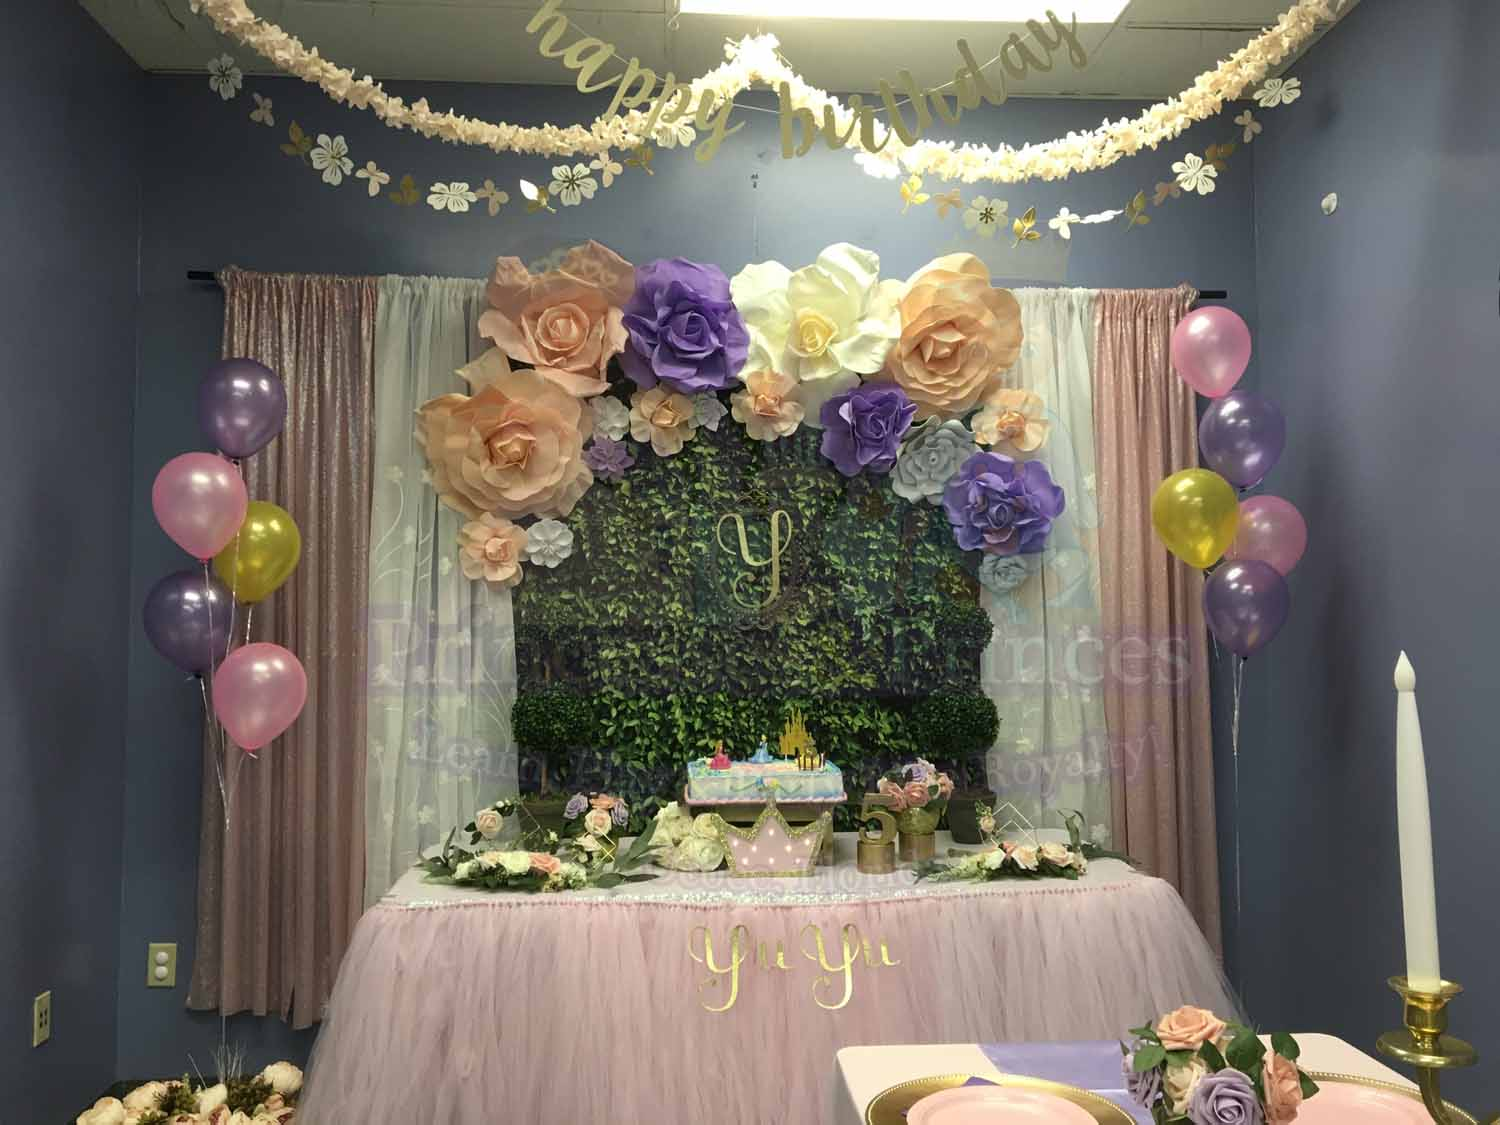 Enchanted Garden Birthday Party Decorations Princesses Princes